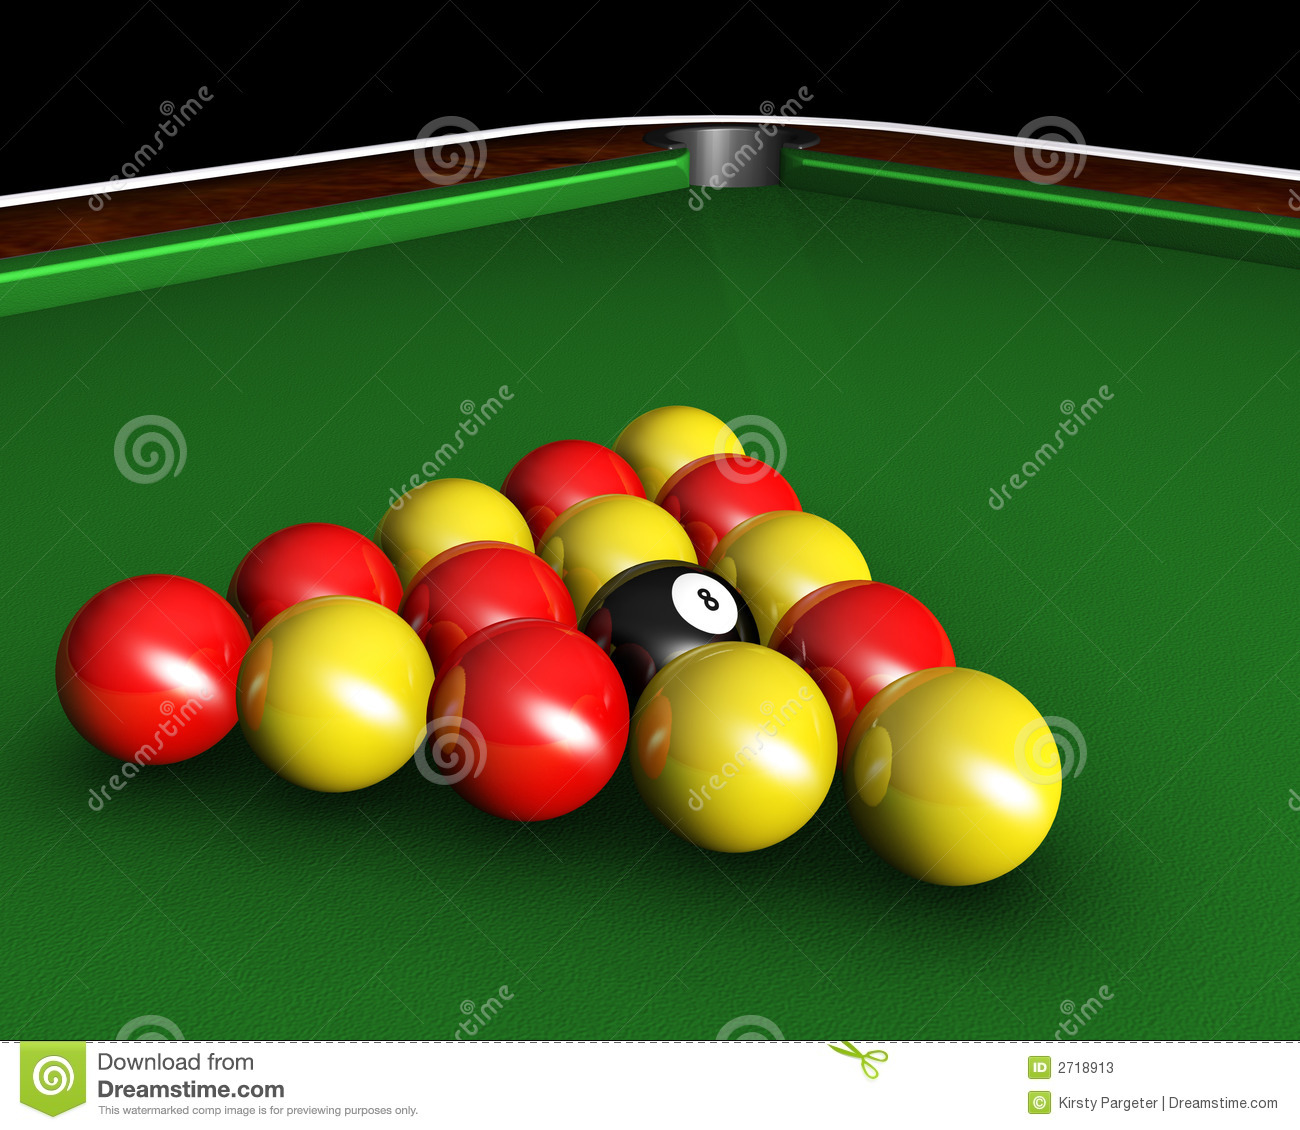 pool table balls car interior design. Black Bedroom Furniture Sets. Home Design Ideas